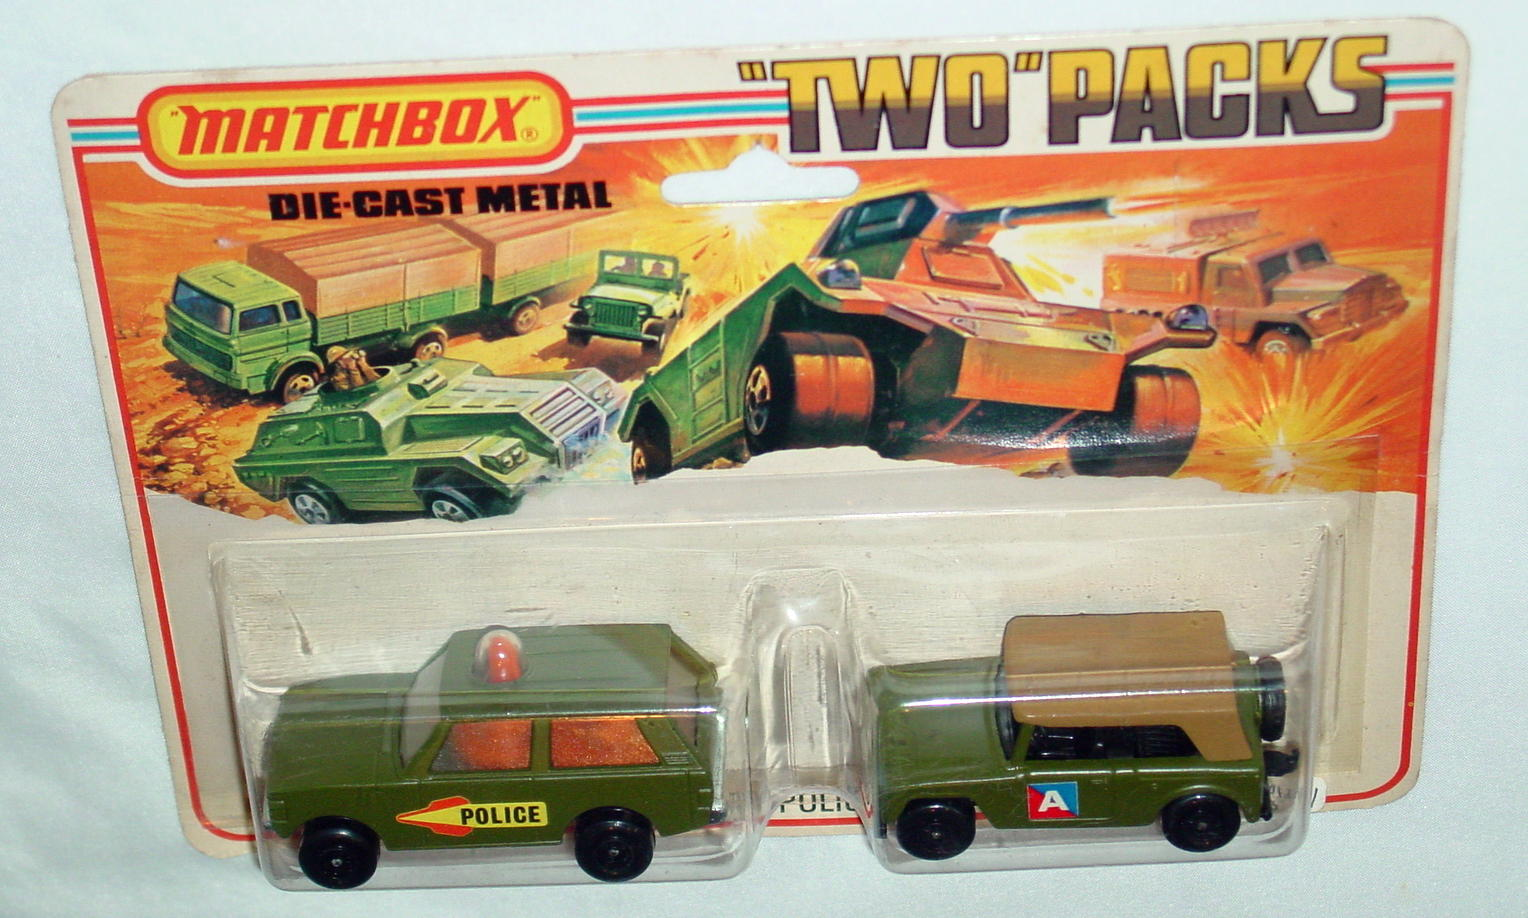 Twin Pack 12 A 3 - olive 20B12 Police olive 18A4 Field Car C9.5 Tall